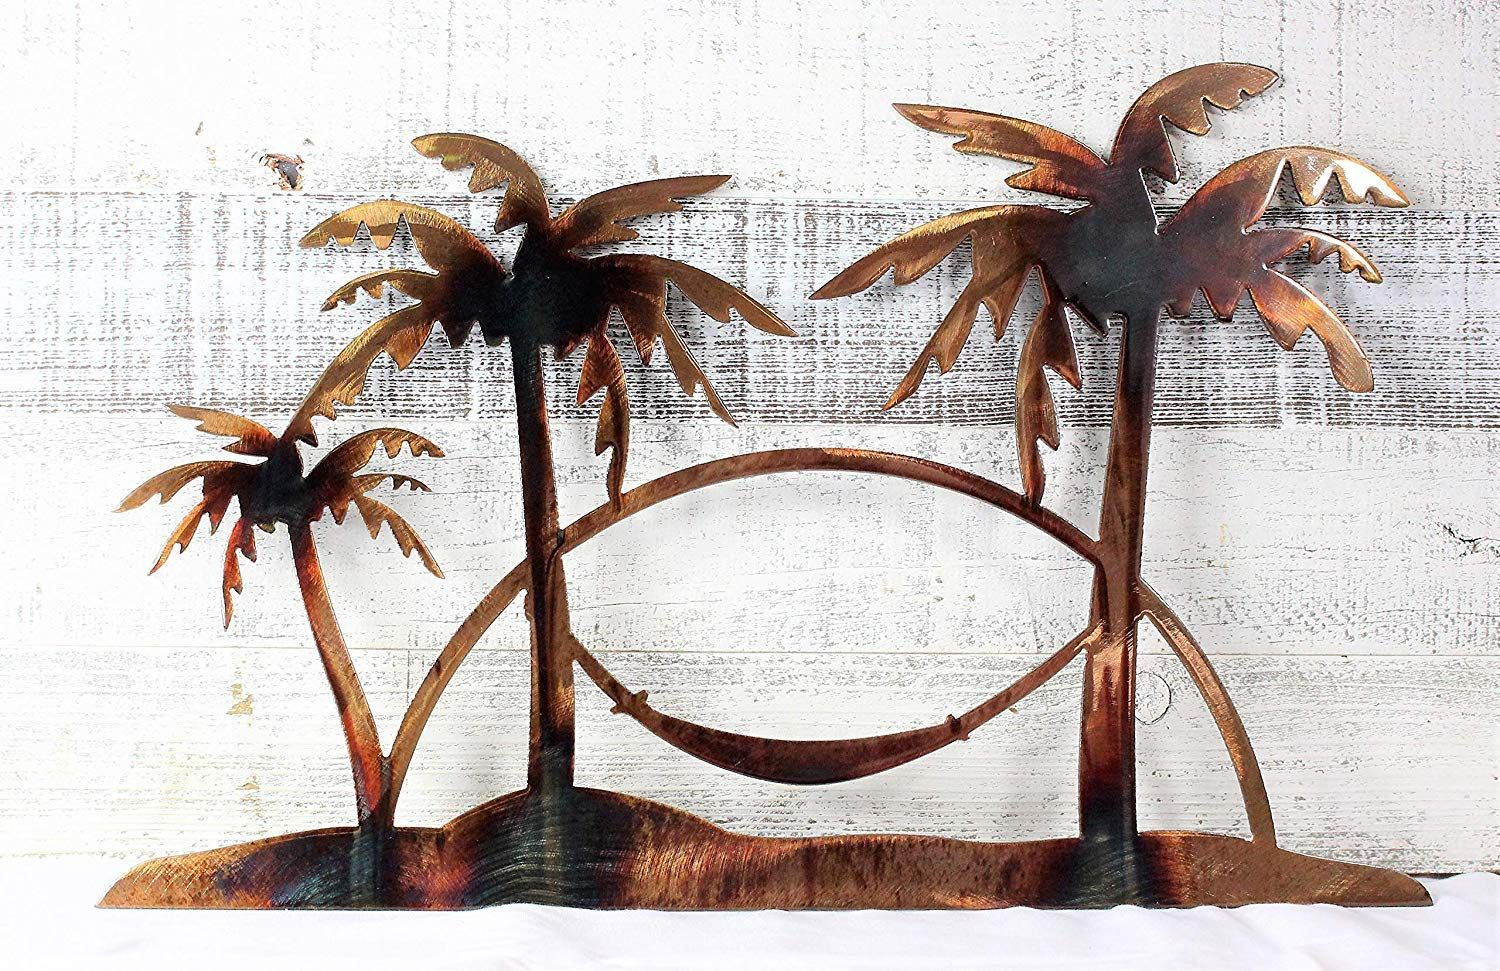 Best Palm Tree Wall Art And Palm Tree Wall Decor For 2020 Beachfront Decor Palm Tree Wall Art Metal Art Decor Metal Tree Wall Art